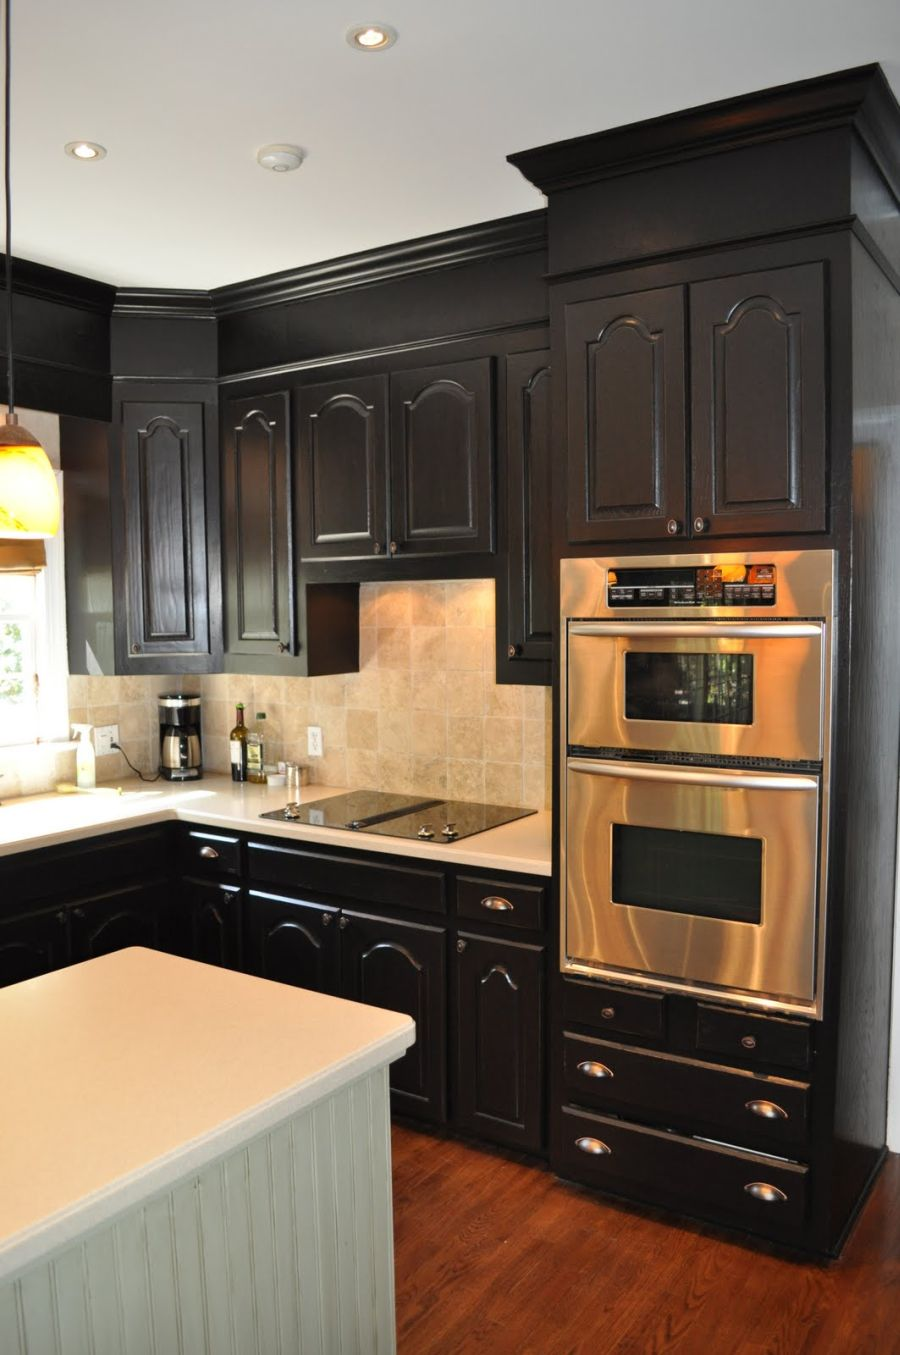 black kitchen cabinets cabinet kitchen Black Cabinets with Soffits